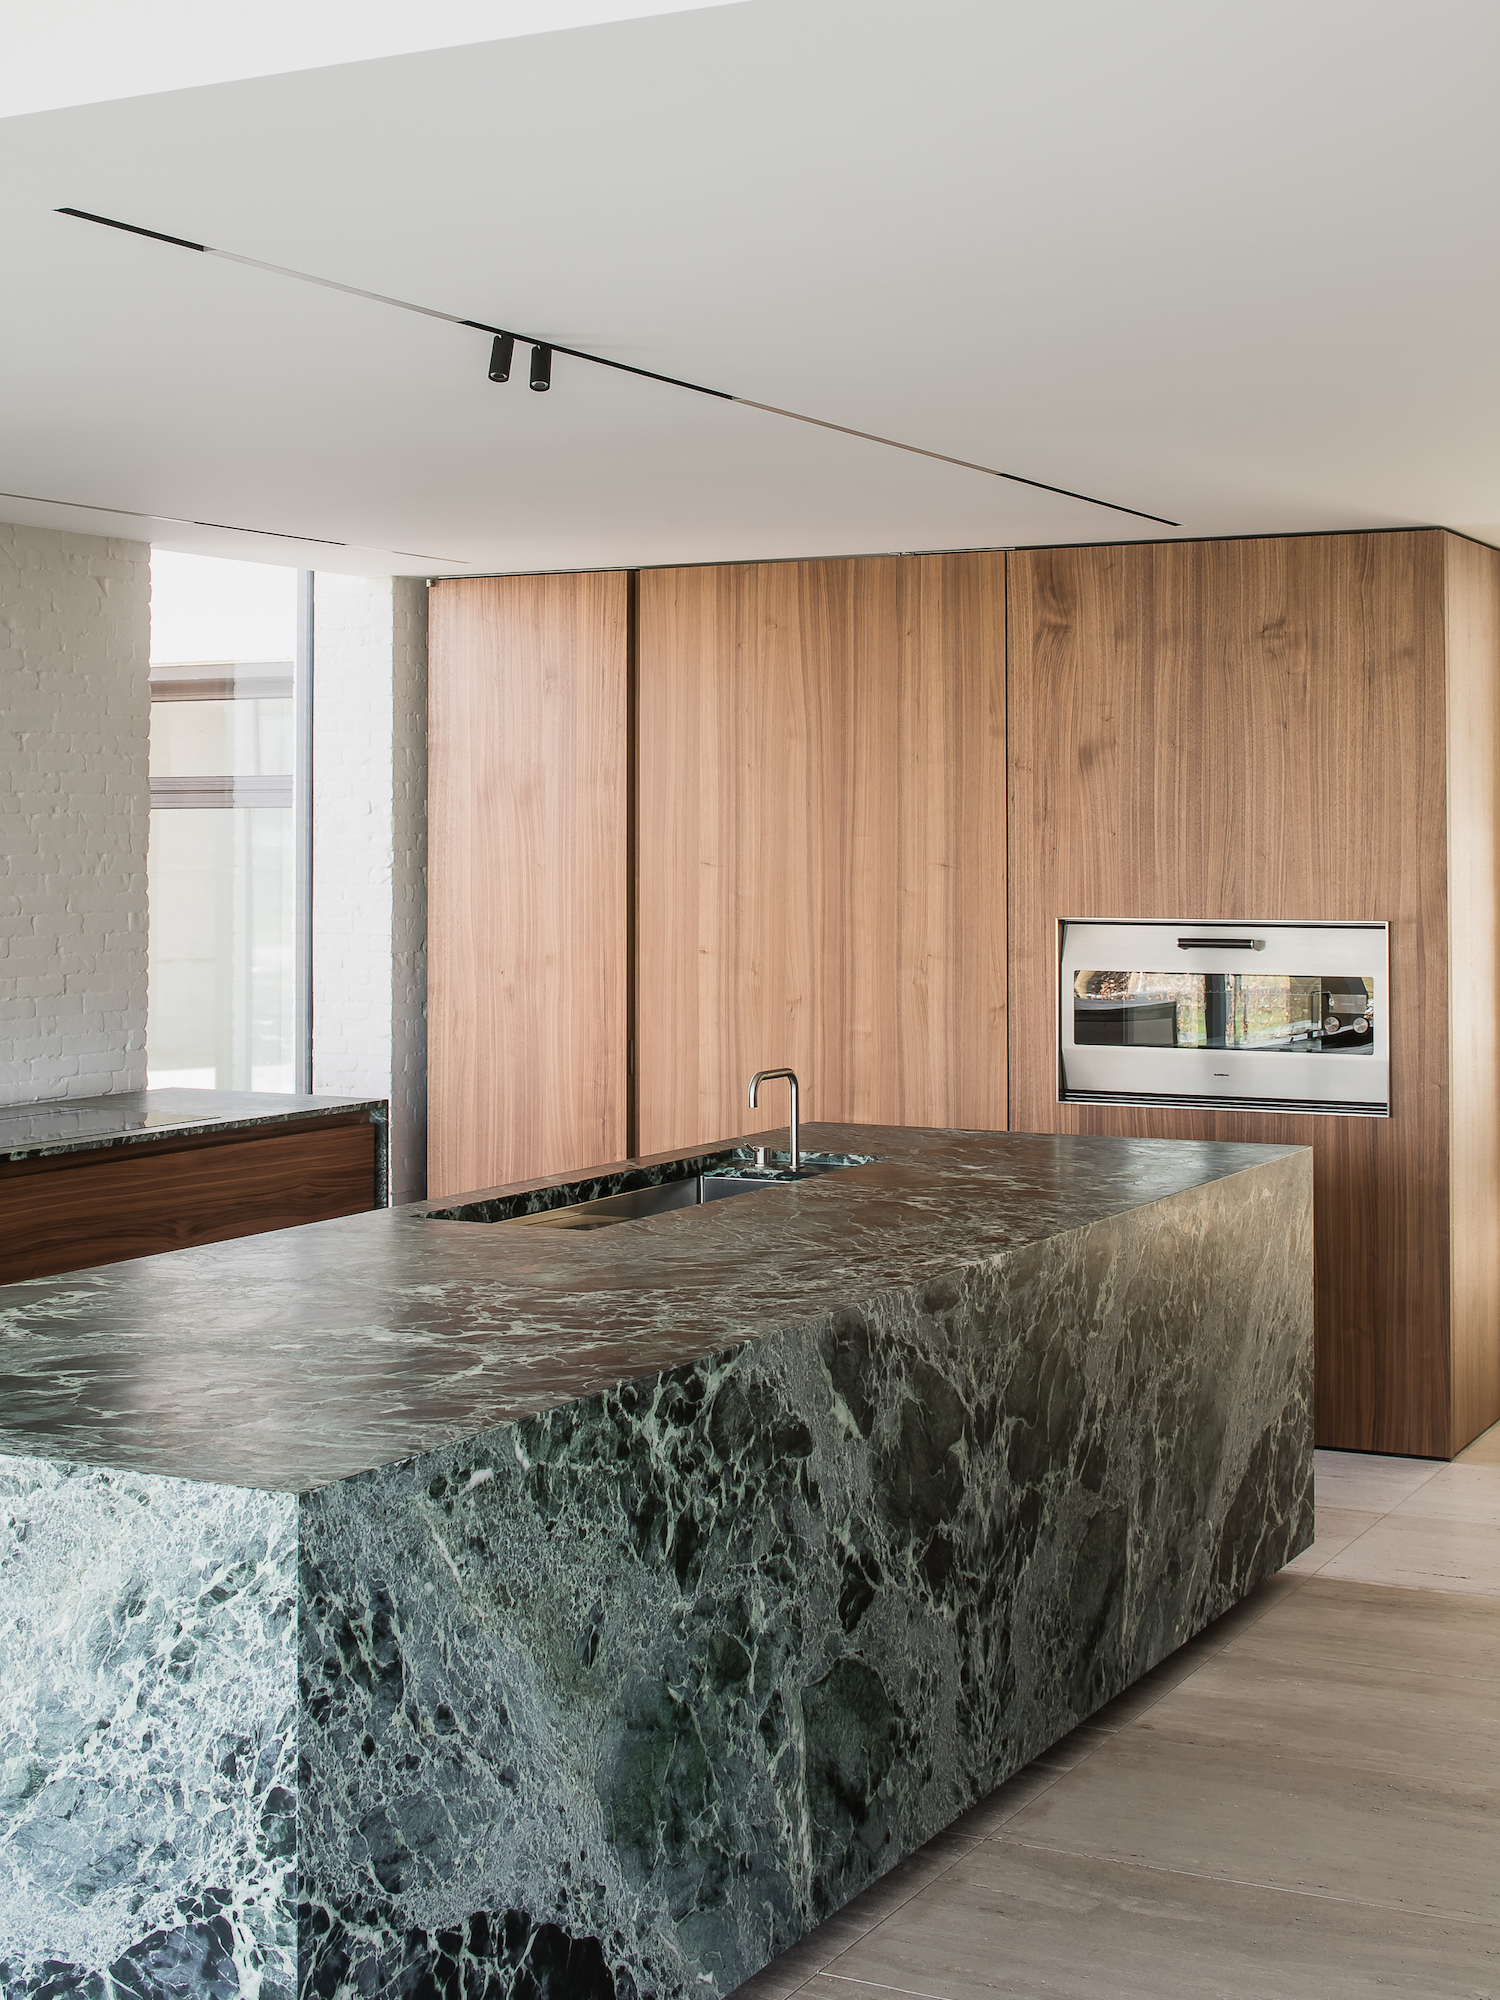 est living dejaeger interieur architecten belgian kitchens 1